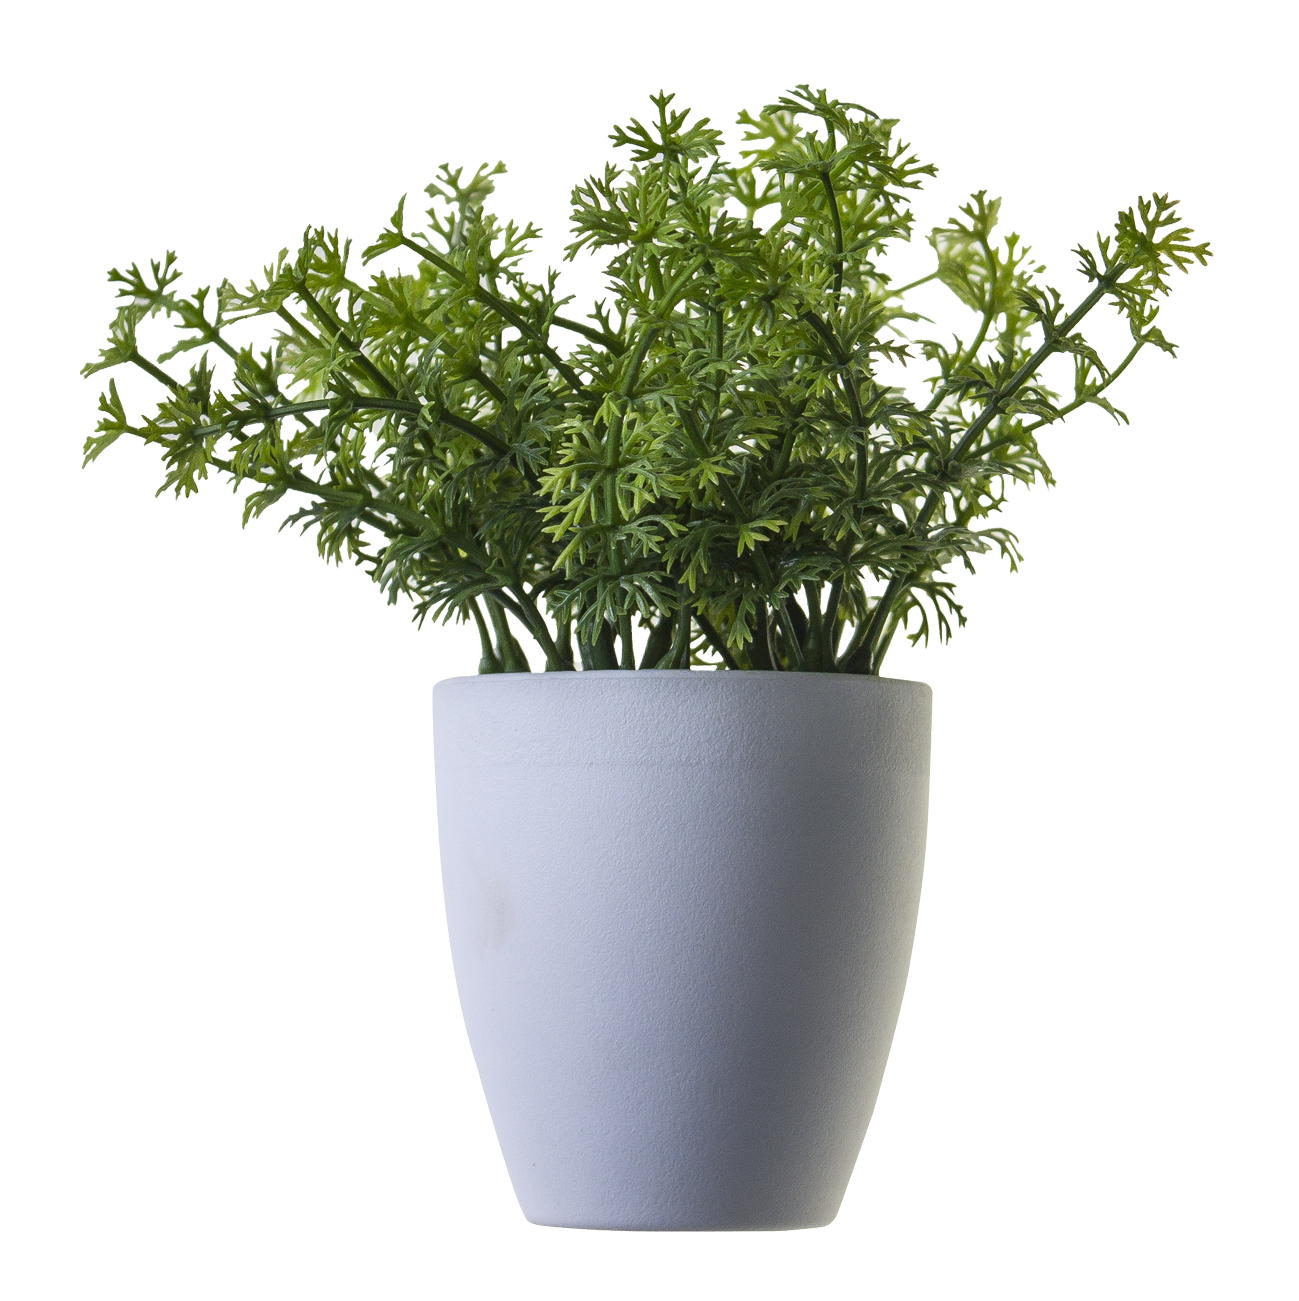 Image potted flower free. House plant png